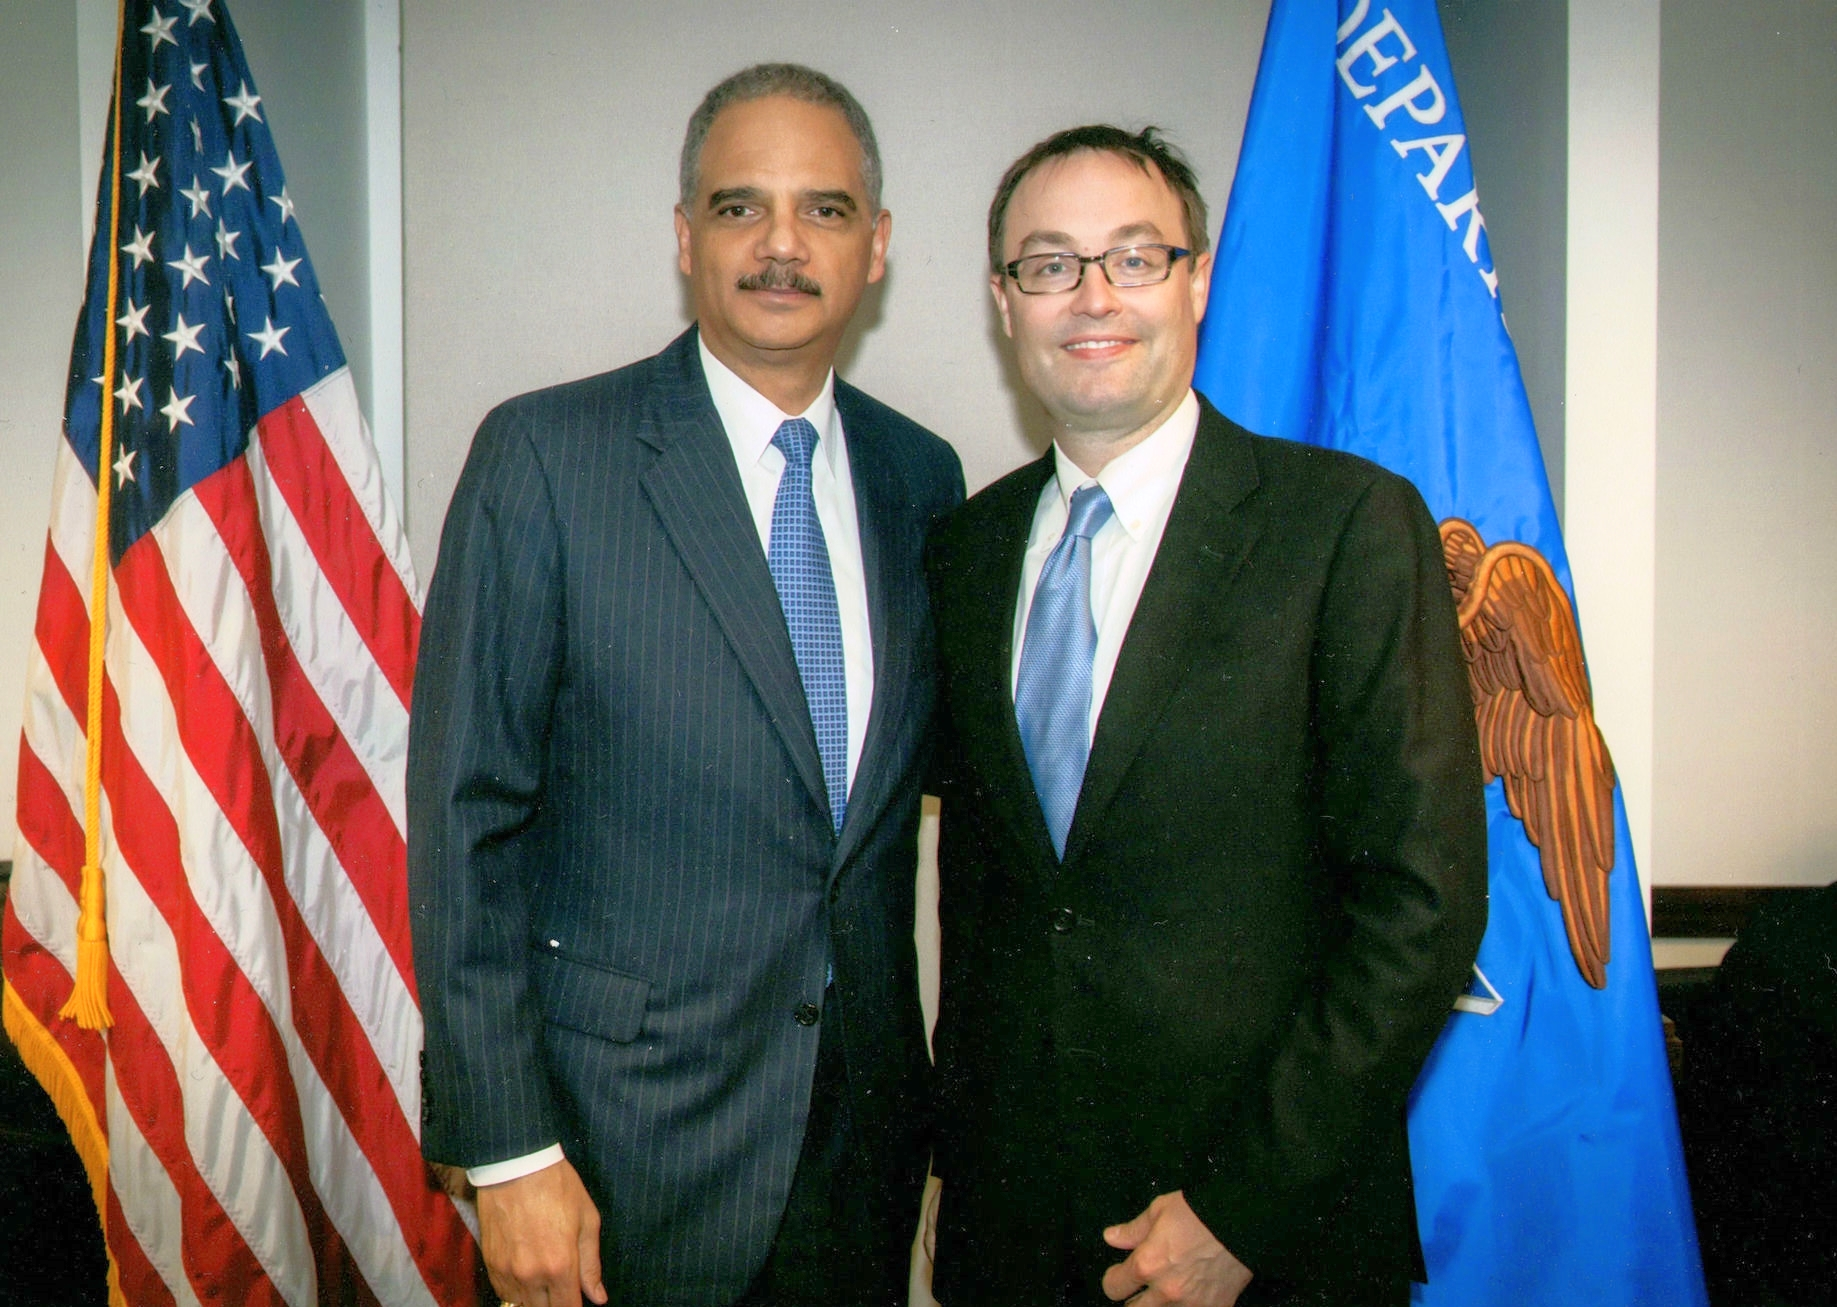 Bryan Sells with Attorney General Eric Holder at the U.S. Department of Justice in 2013.